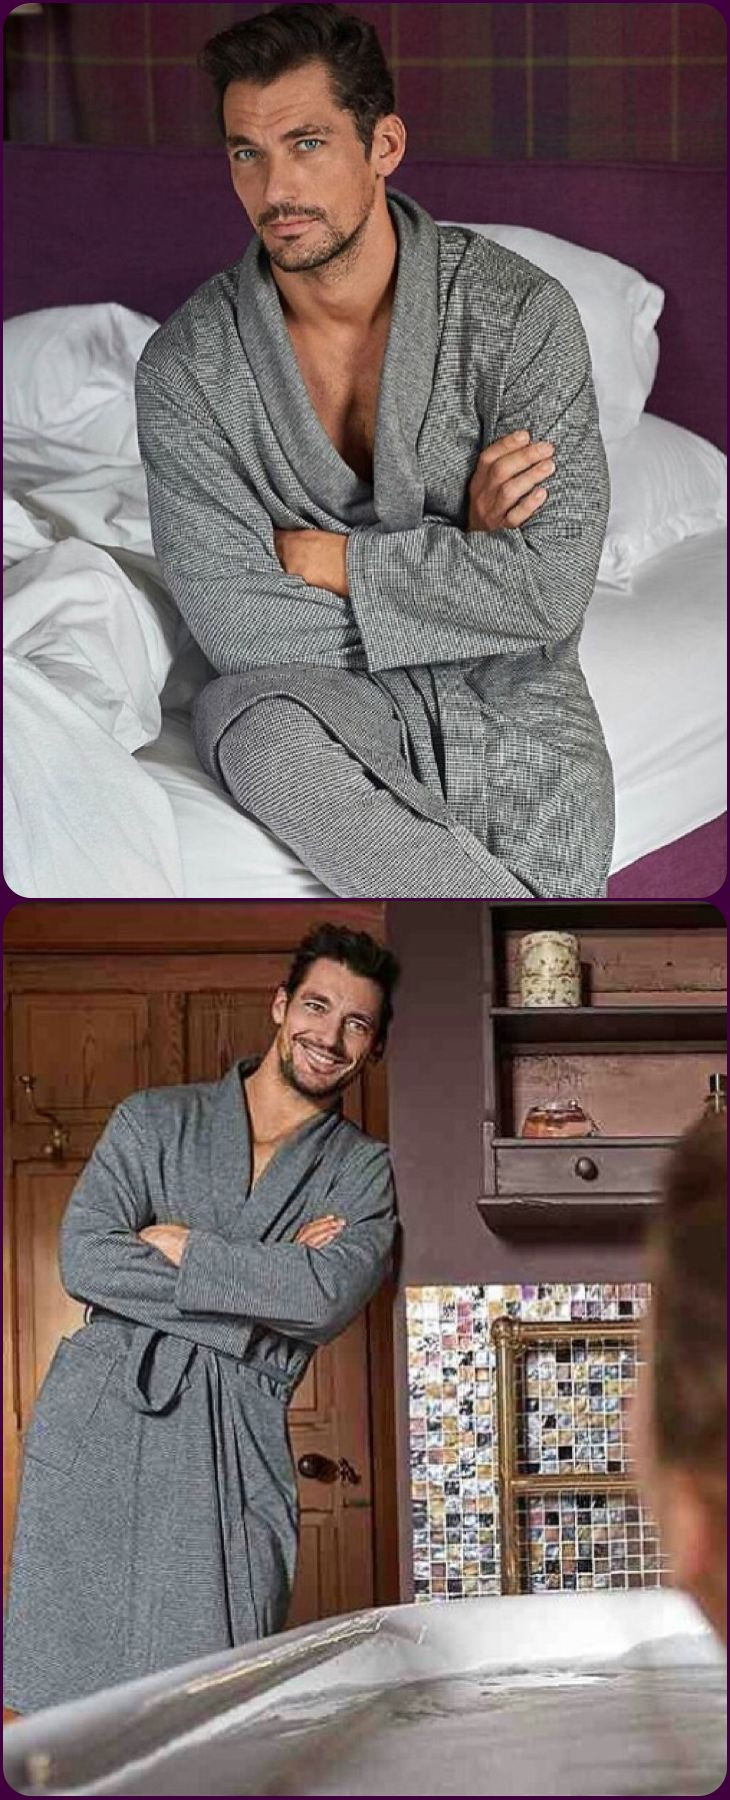 David Gandy, Men's Fashion, Male Model, Good Looking, Beautiful Man, Guy, Handsome, Hot, Sexy, Eye Candy, Muscle, Abs, Six Pack デイビッド・ガンディ メンズファッション 男性モデル